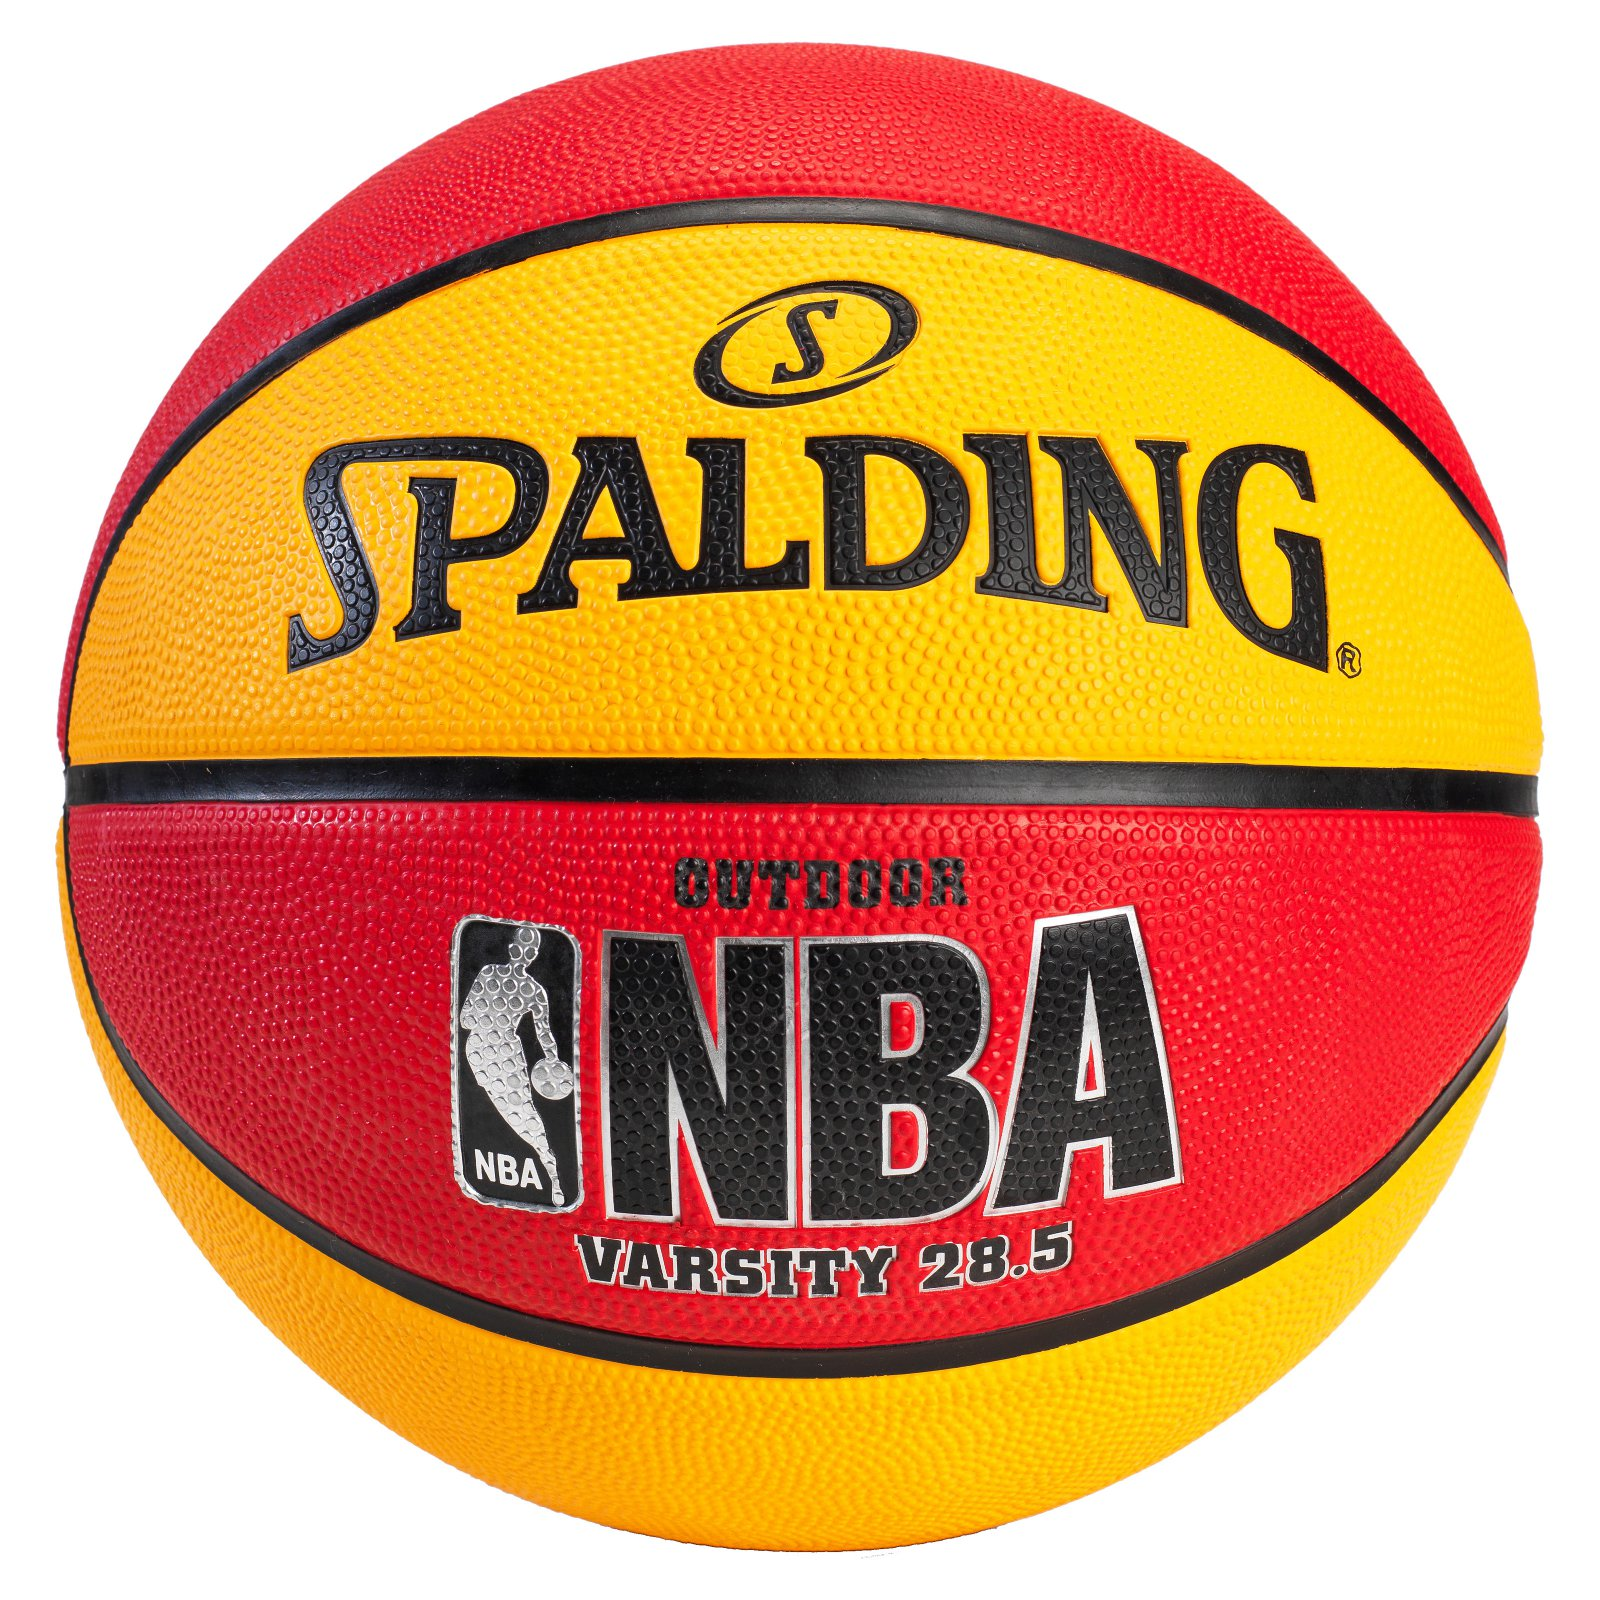 "Spalding NBA Varsity 28.5"" Basketball by Spalding"